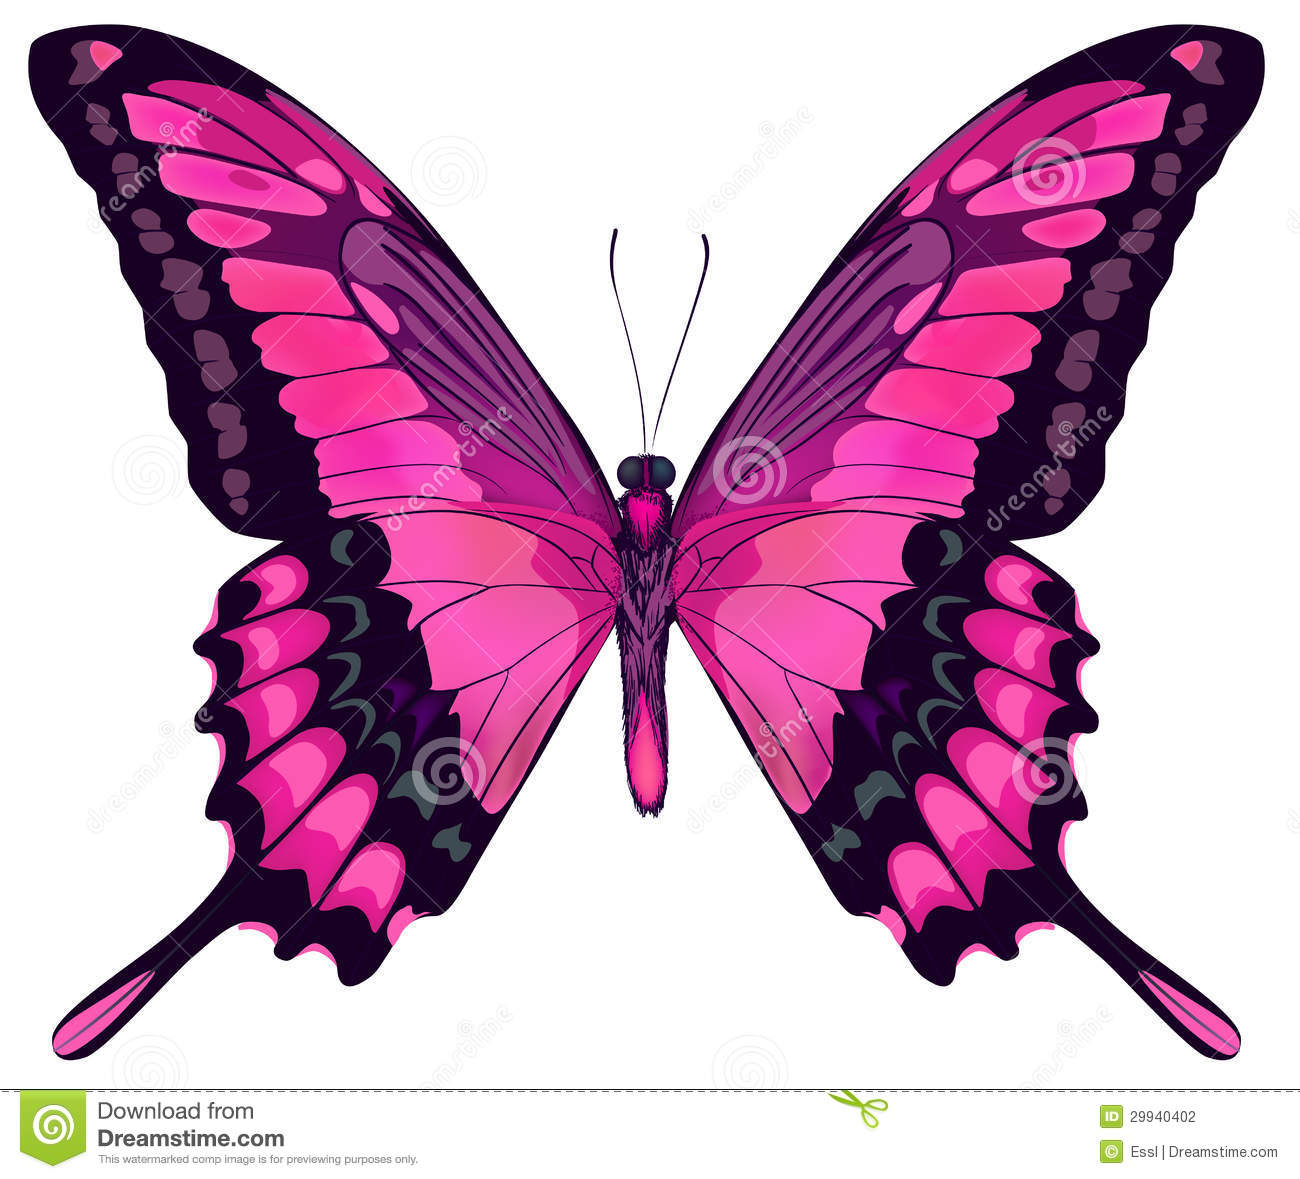 https://thumbs.dreamstime.com/z/vector-iillustration-beautiful-pink-butterfly-isolated-white-background-29940402.jpg Pink Butterfly Graphics